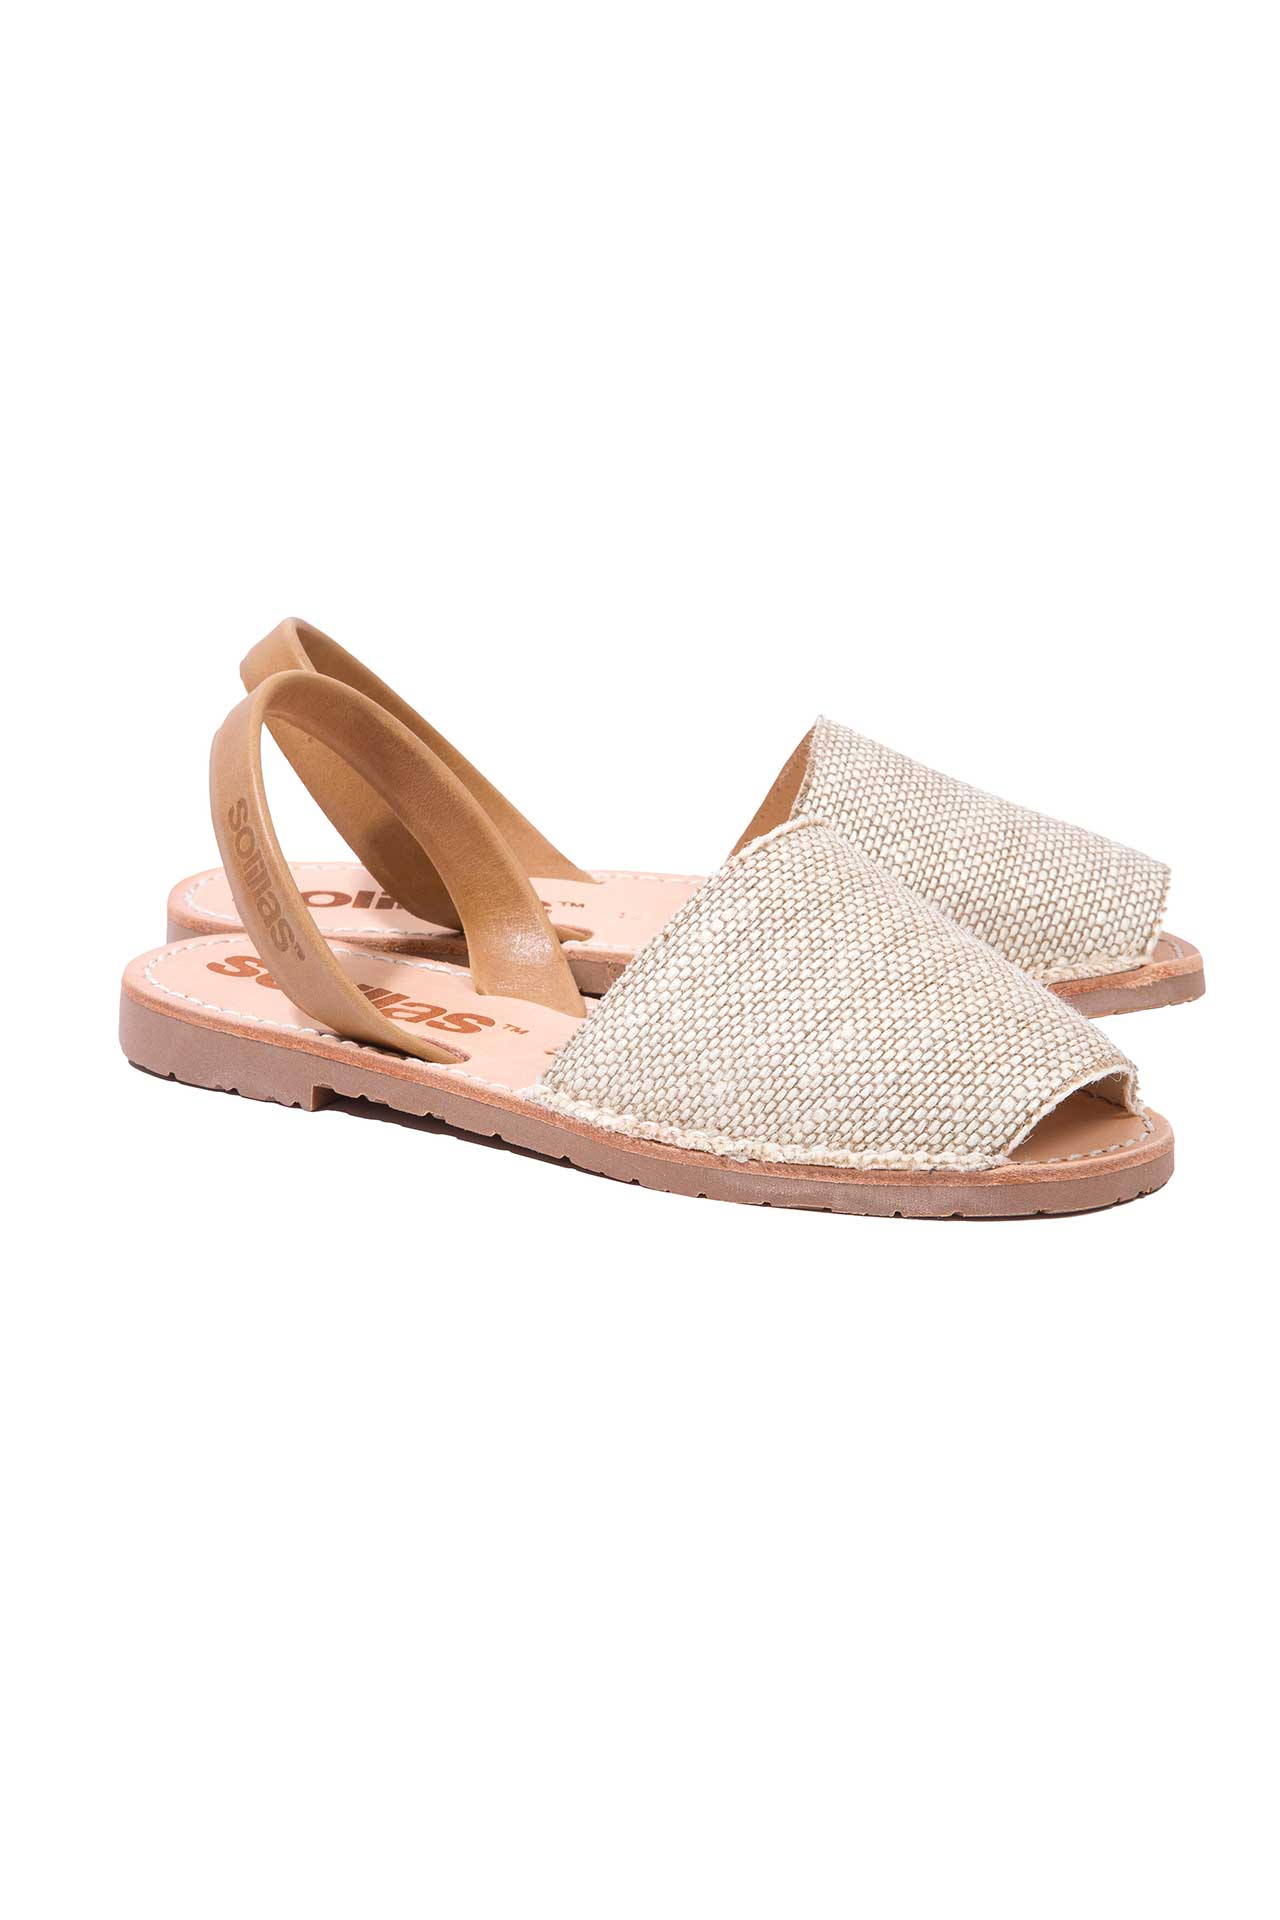 67b28bb579b Natural Canvas Tan Leather Menorcan Sandals for Women